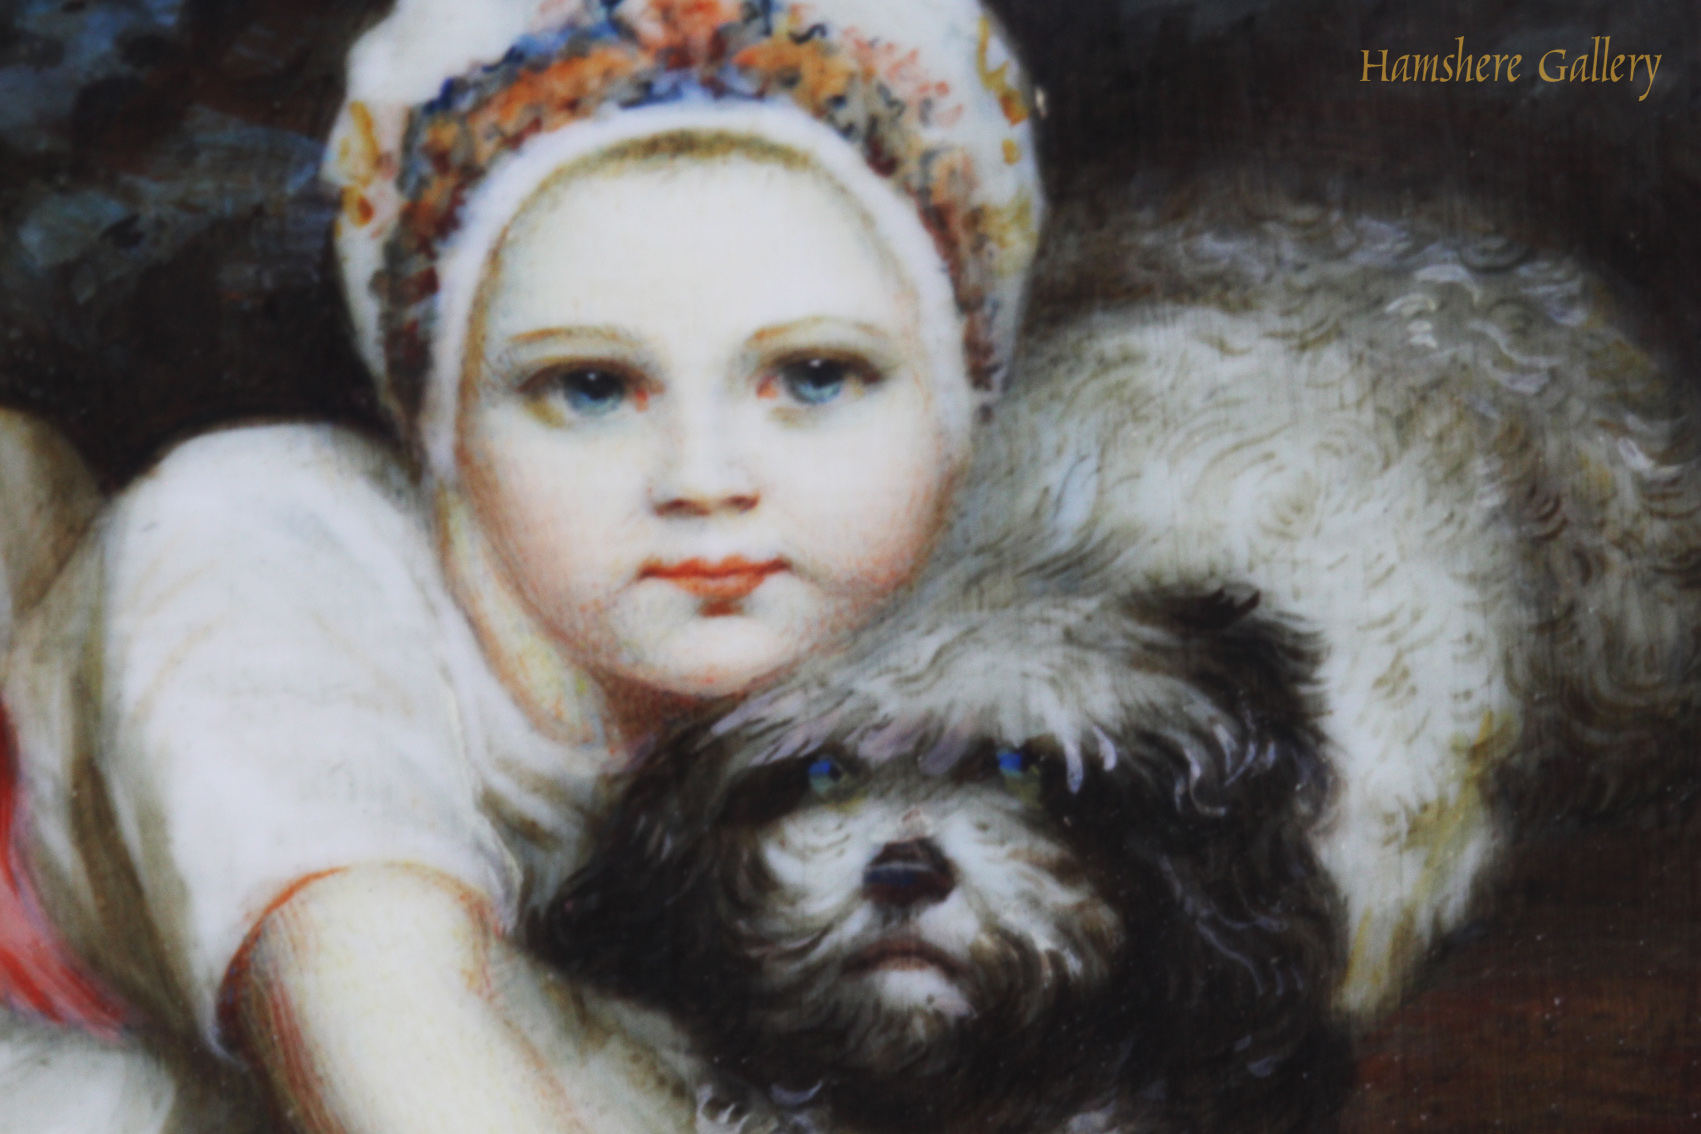 Click for larger image: An ivory miniature of Princess Sophia Matilda of Gloucester (1773-1844) and her Maltese after Sir Joshua Reynolds PRA (English, 1723-1792) - An ivory miniature of Princess Sophia Matilda of Gloucester (1773-1844) and her Maltese after Sir Joshua Reynolds PRA (English, 1723-1792)<br />